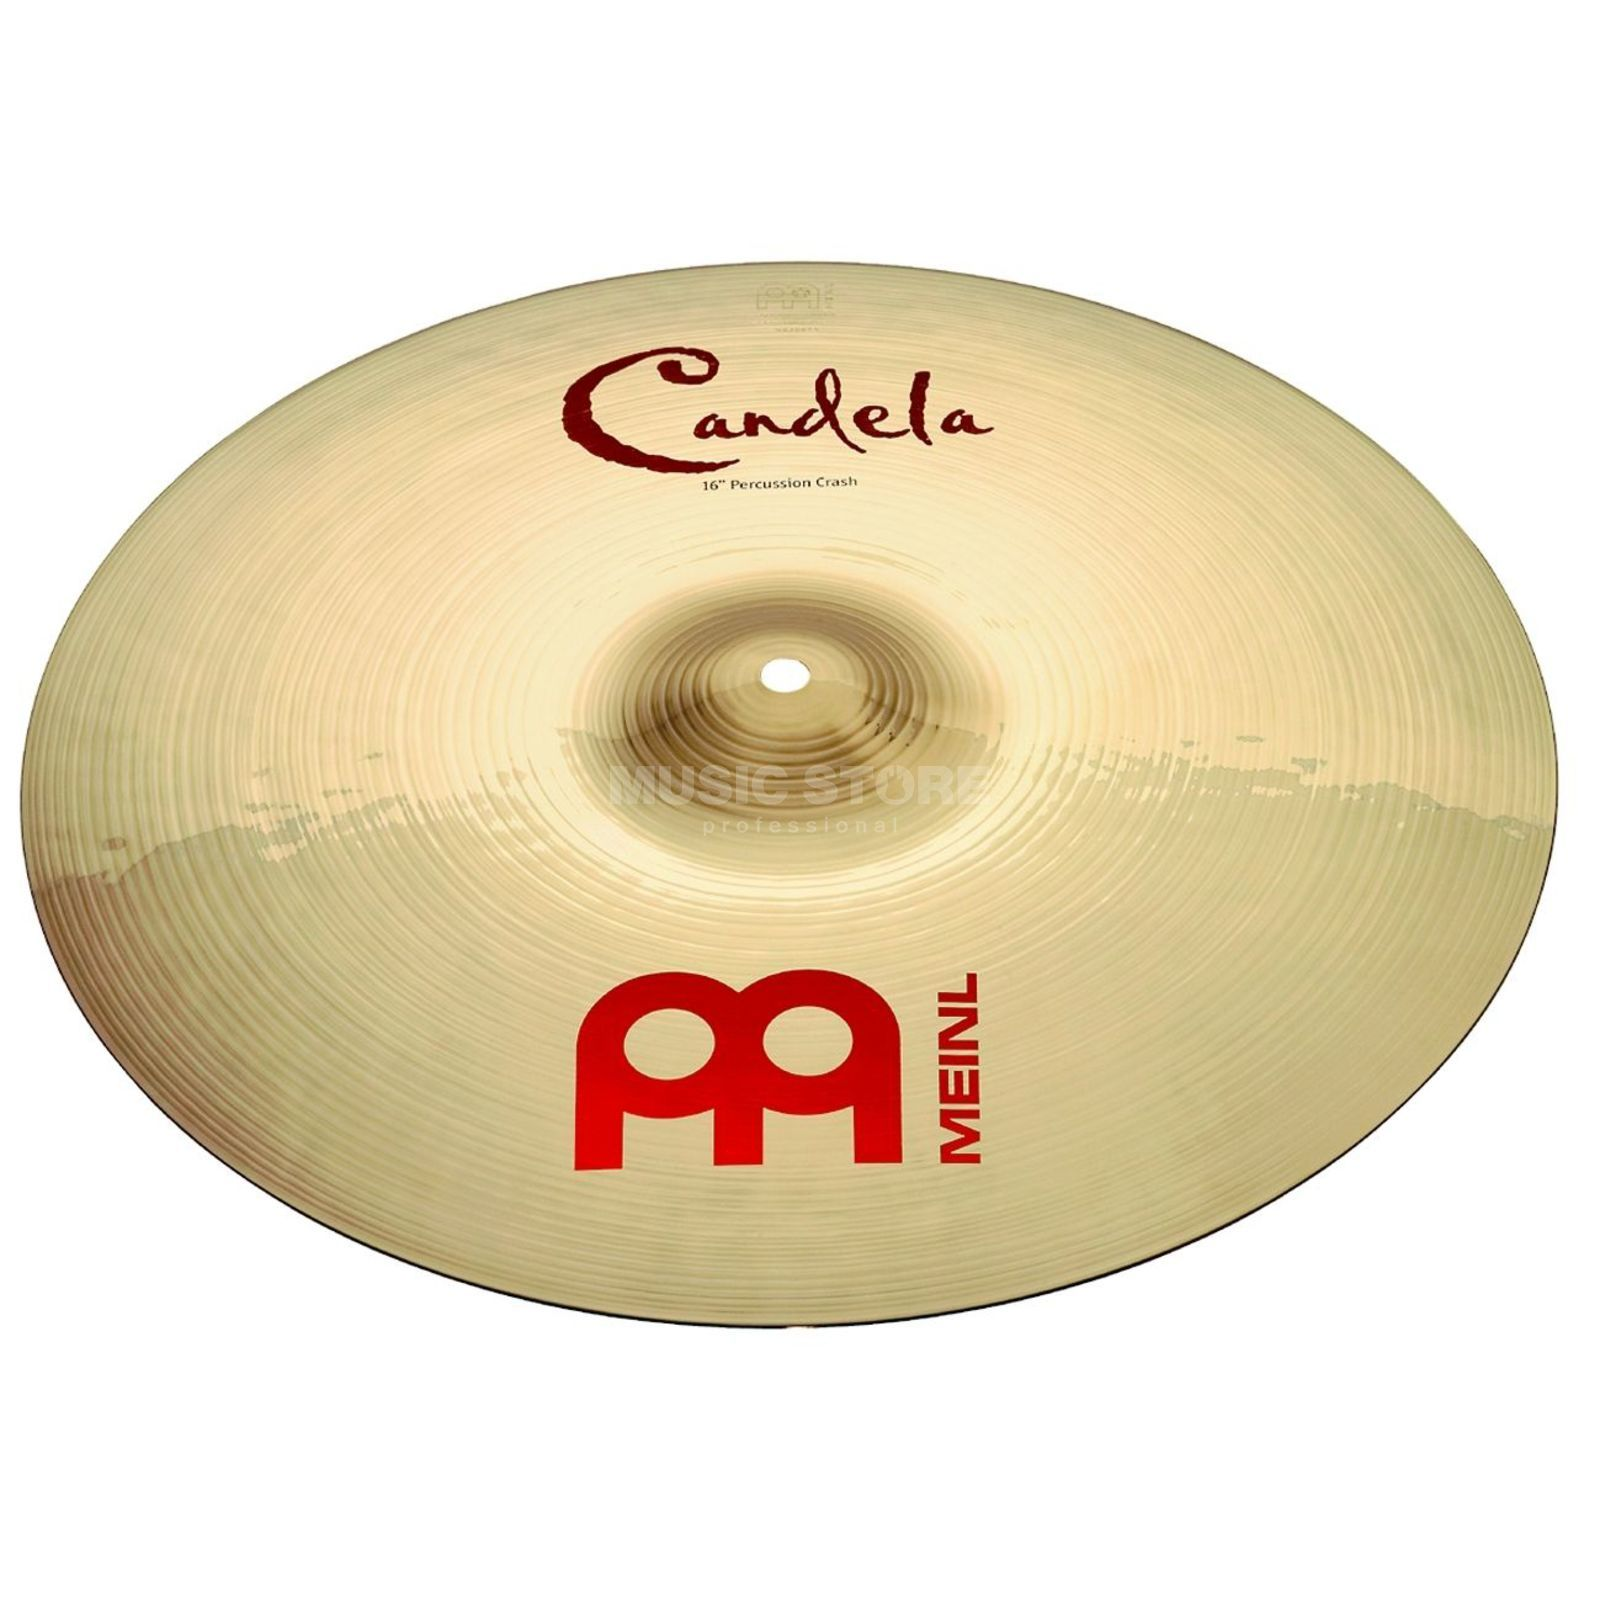 "Meinl Candela Crash 16"", CA16C, Percussion Cymbal Produktbillede"